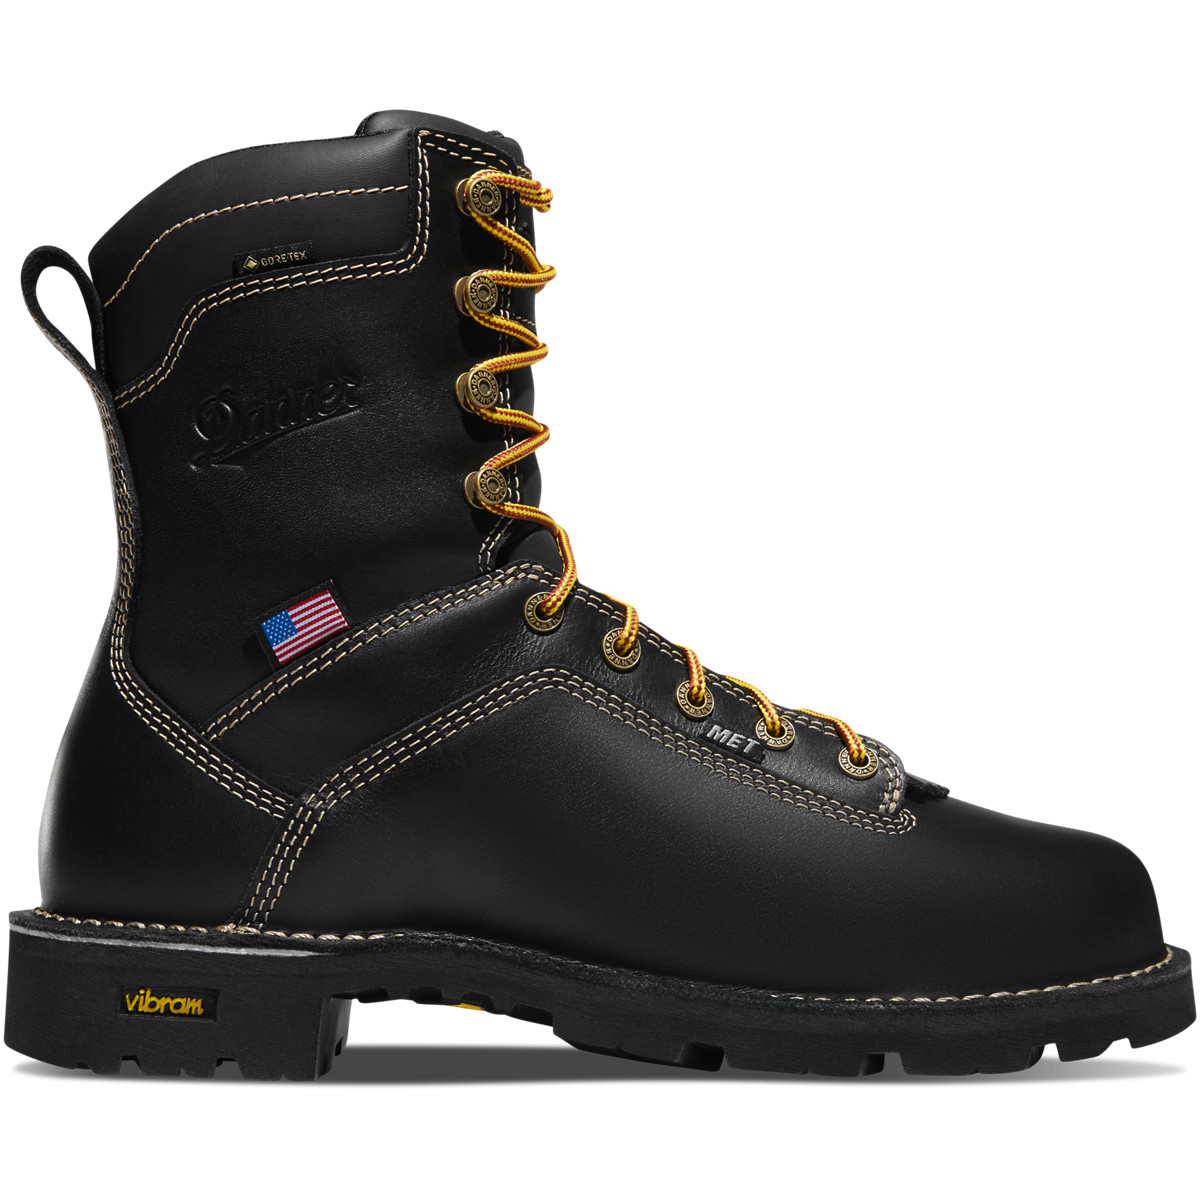 Danner Quarry Boots Review